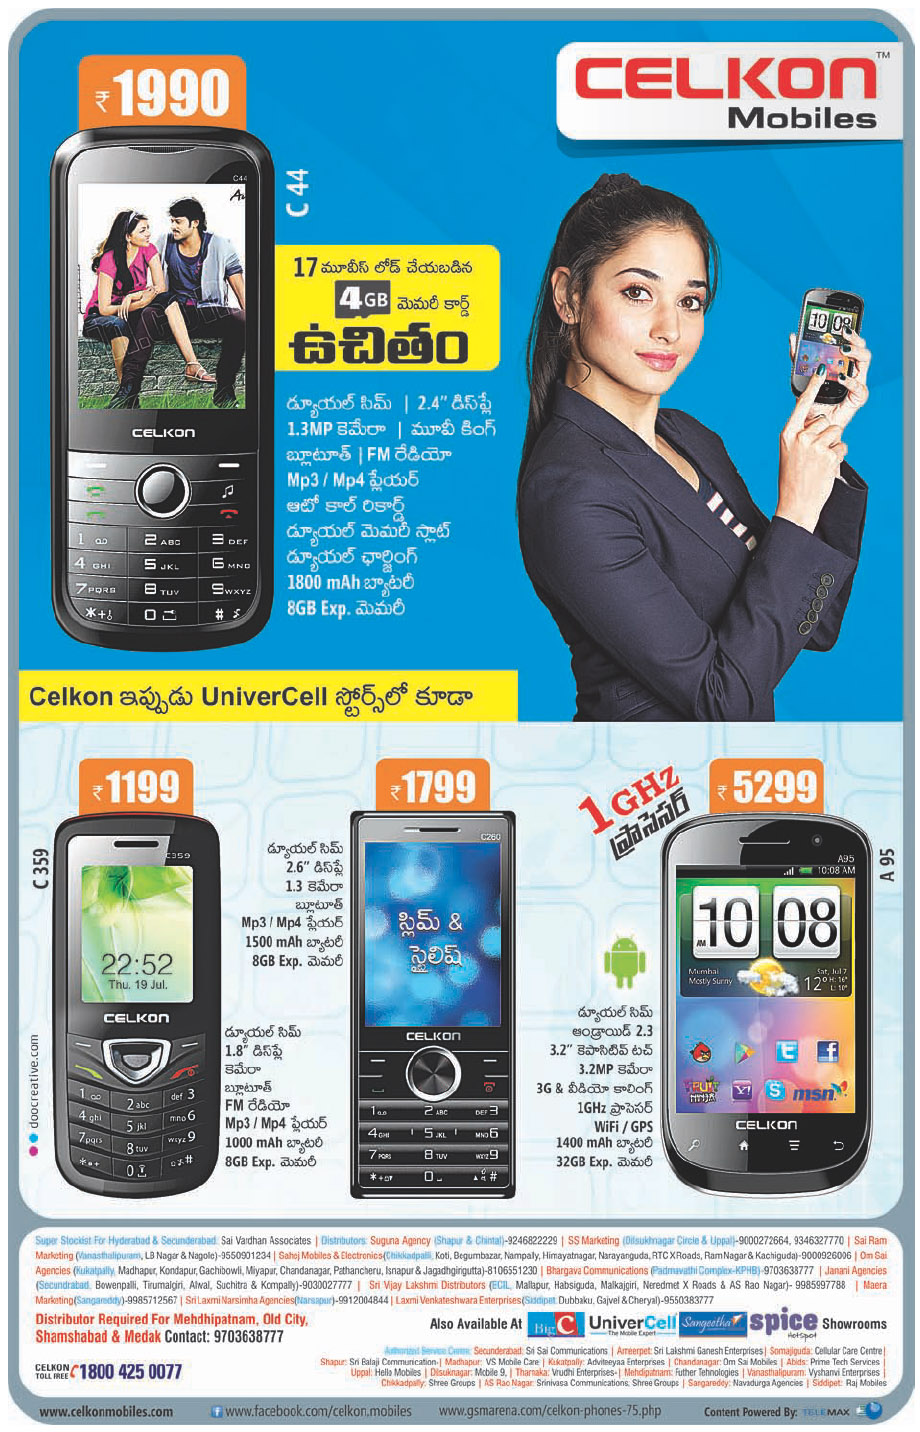 Celkon presenting SPECIAL OFFERS on wide range of mobiles phones